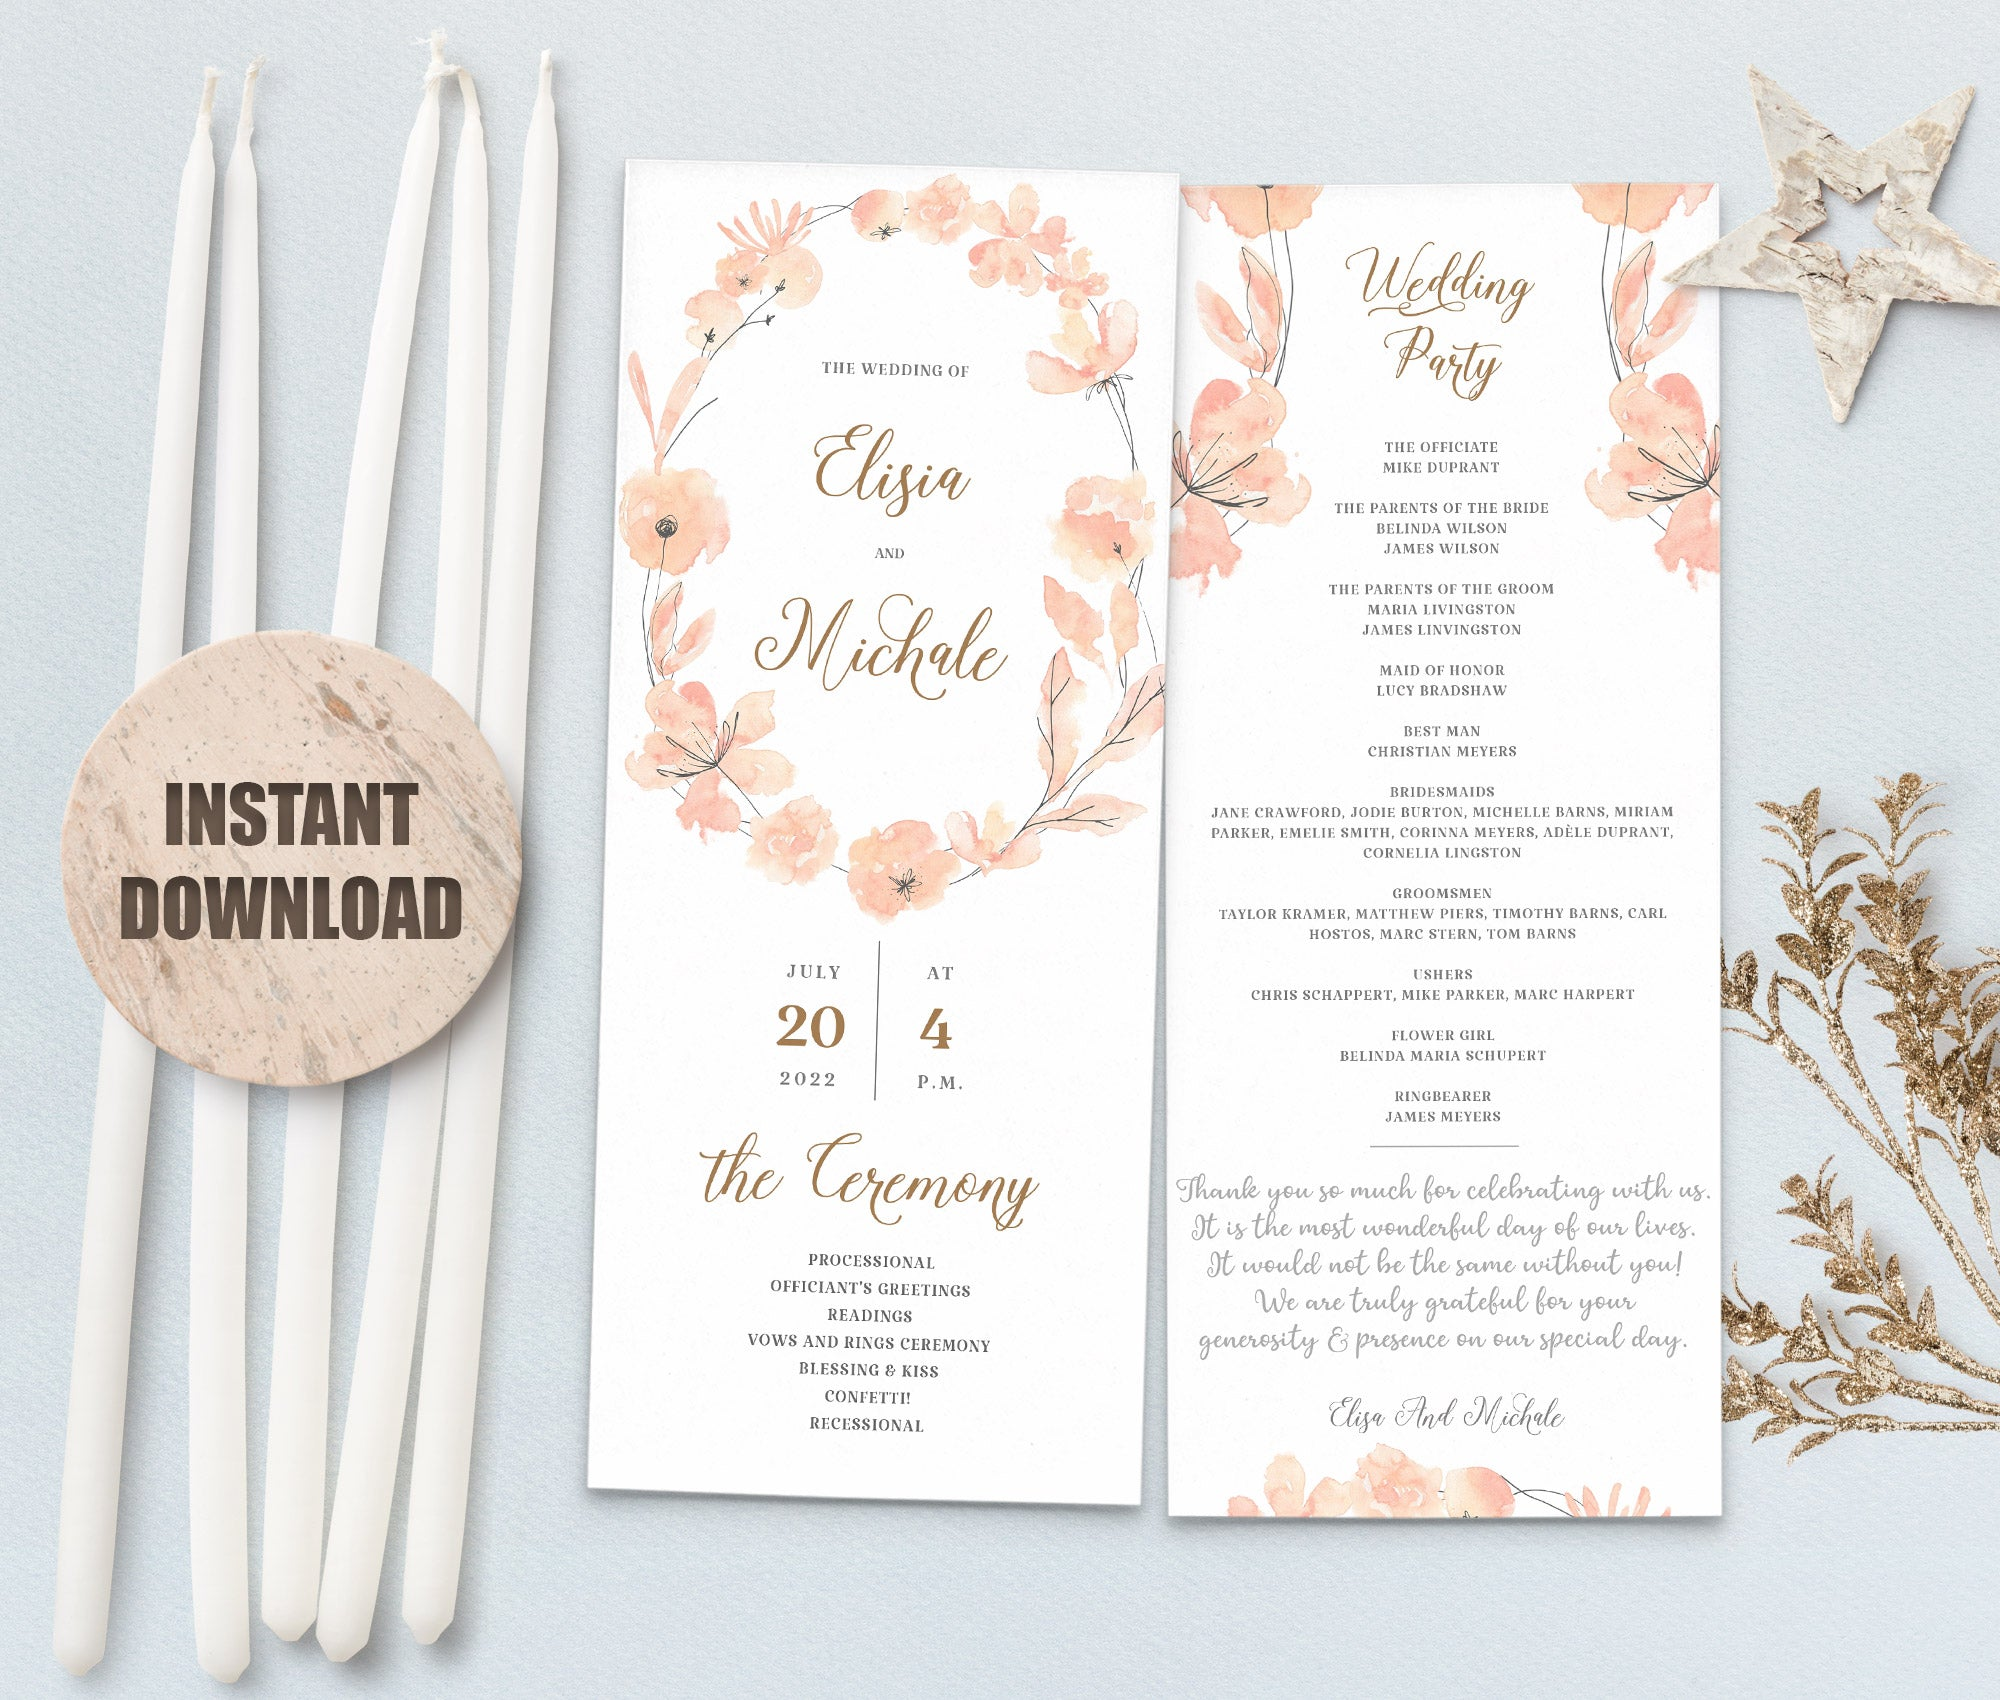 LOVAL Wedding Program set 10